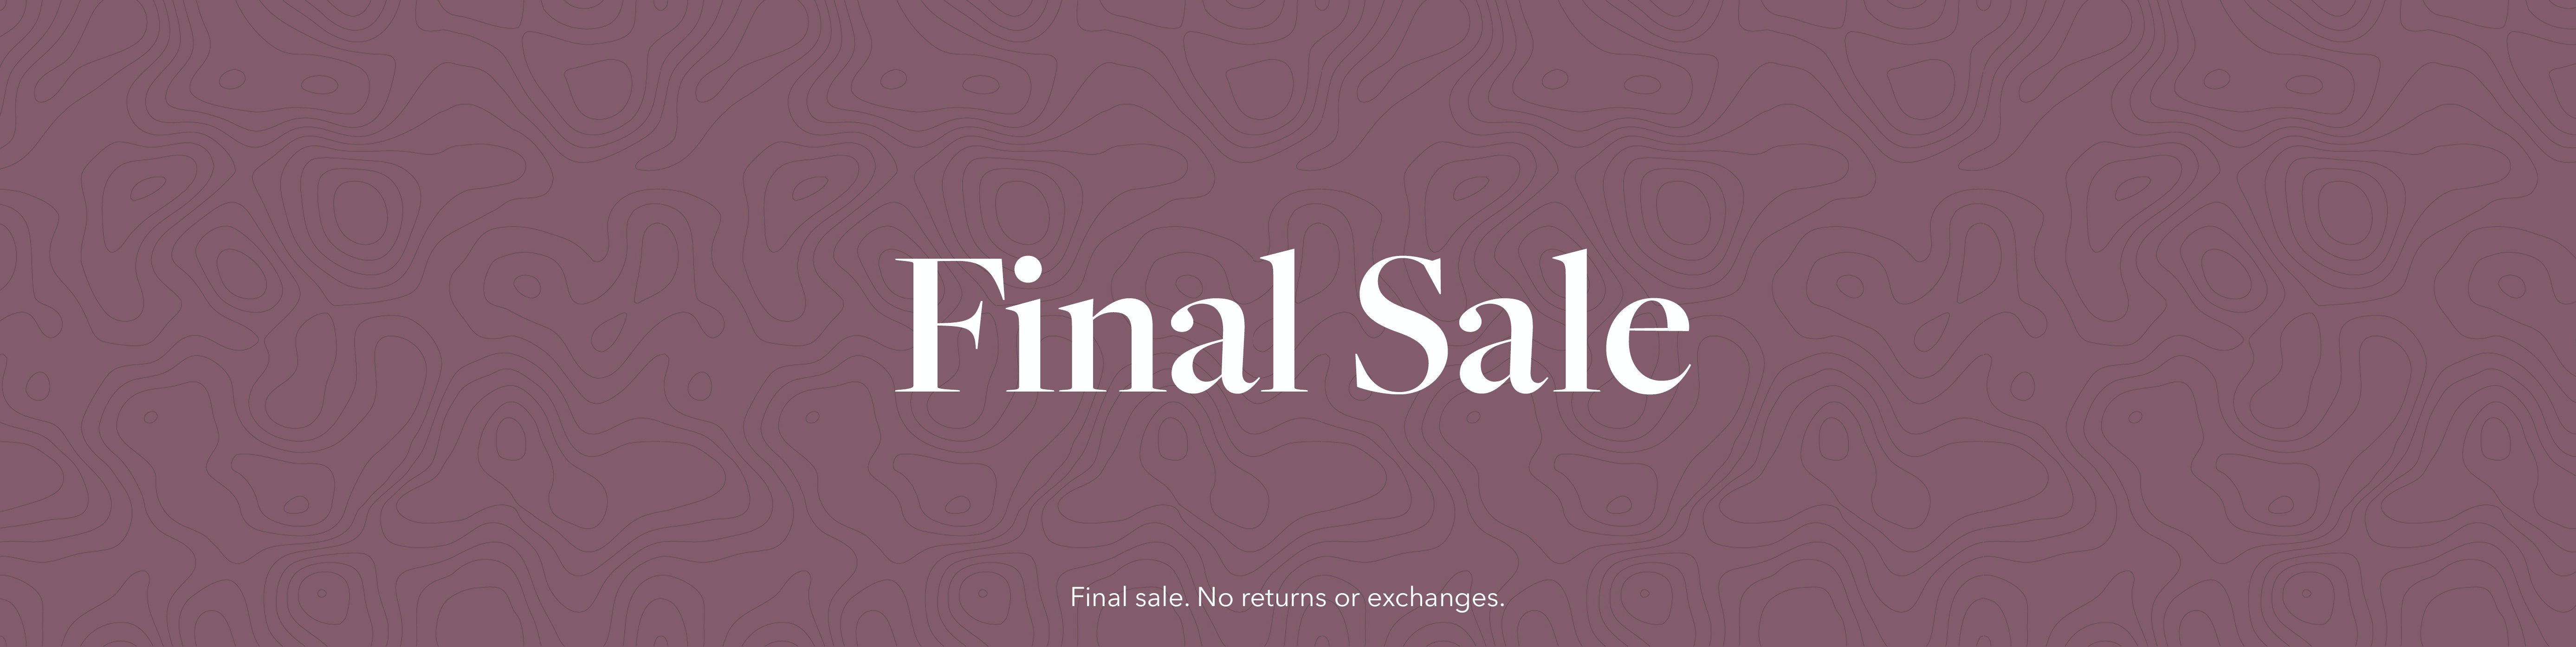 All Final Sale Hero Image